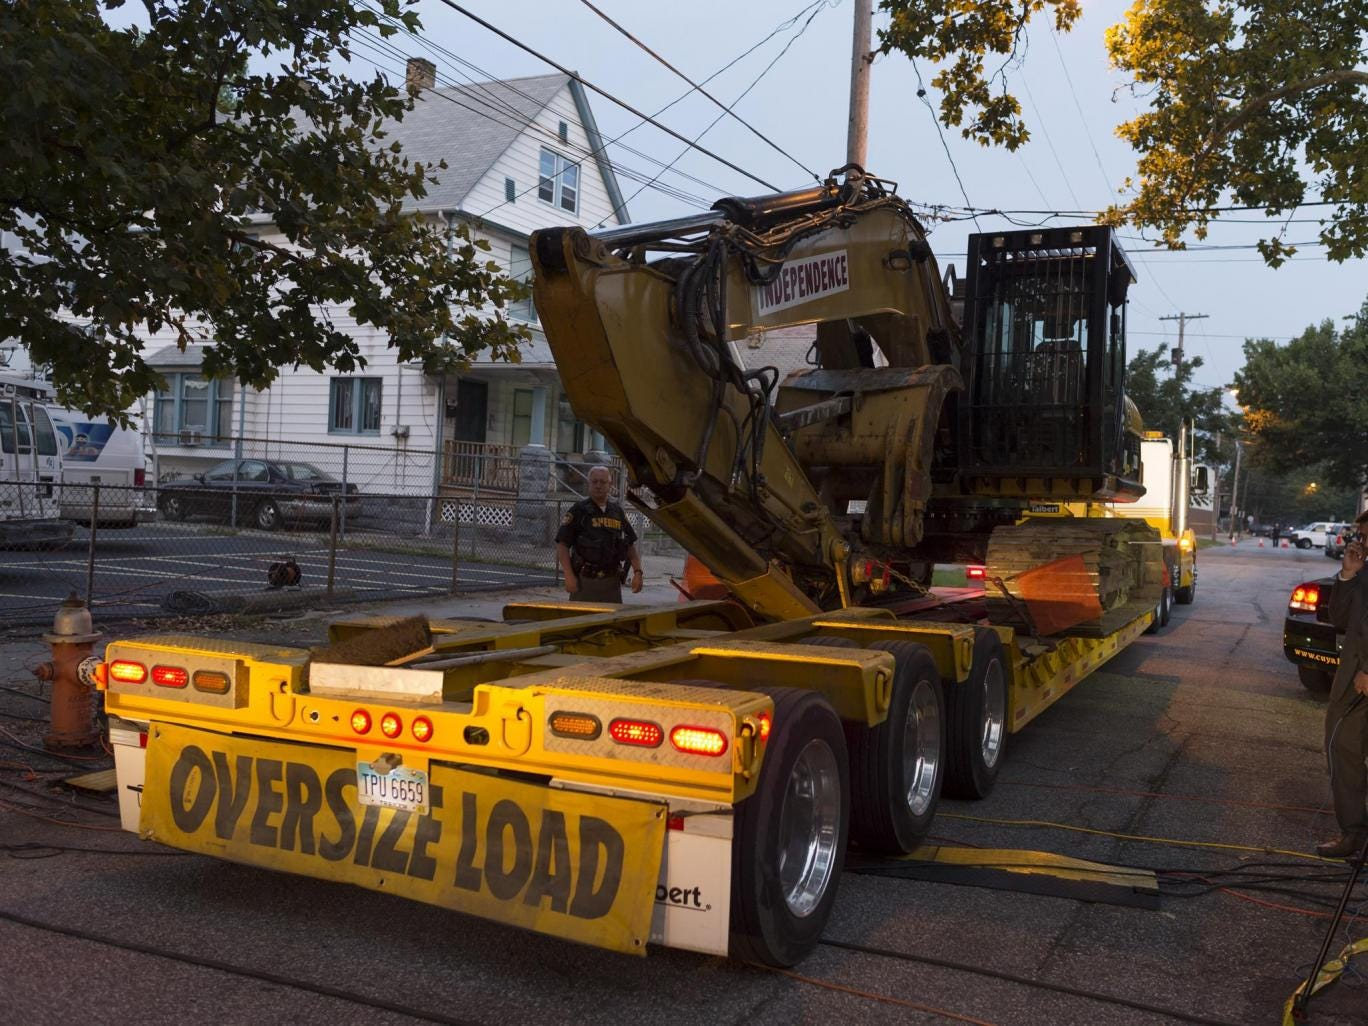 Demolition crews arrive at the home of Ariel Castro in Cleveland, Ohio. Castro was found guilty of abducting three young woman between 2002 and 2004 and today The State of Ohio will tear down his home